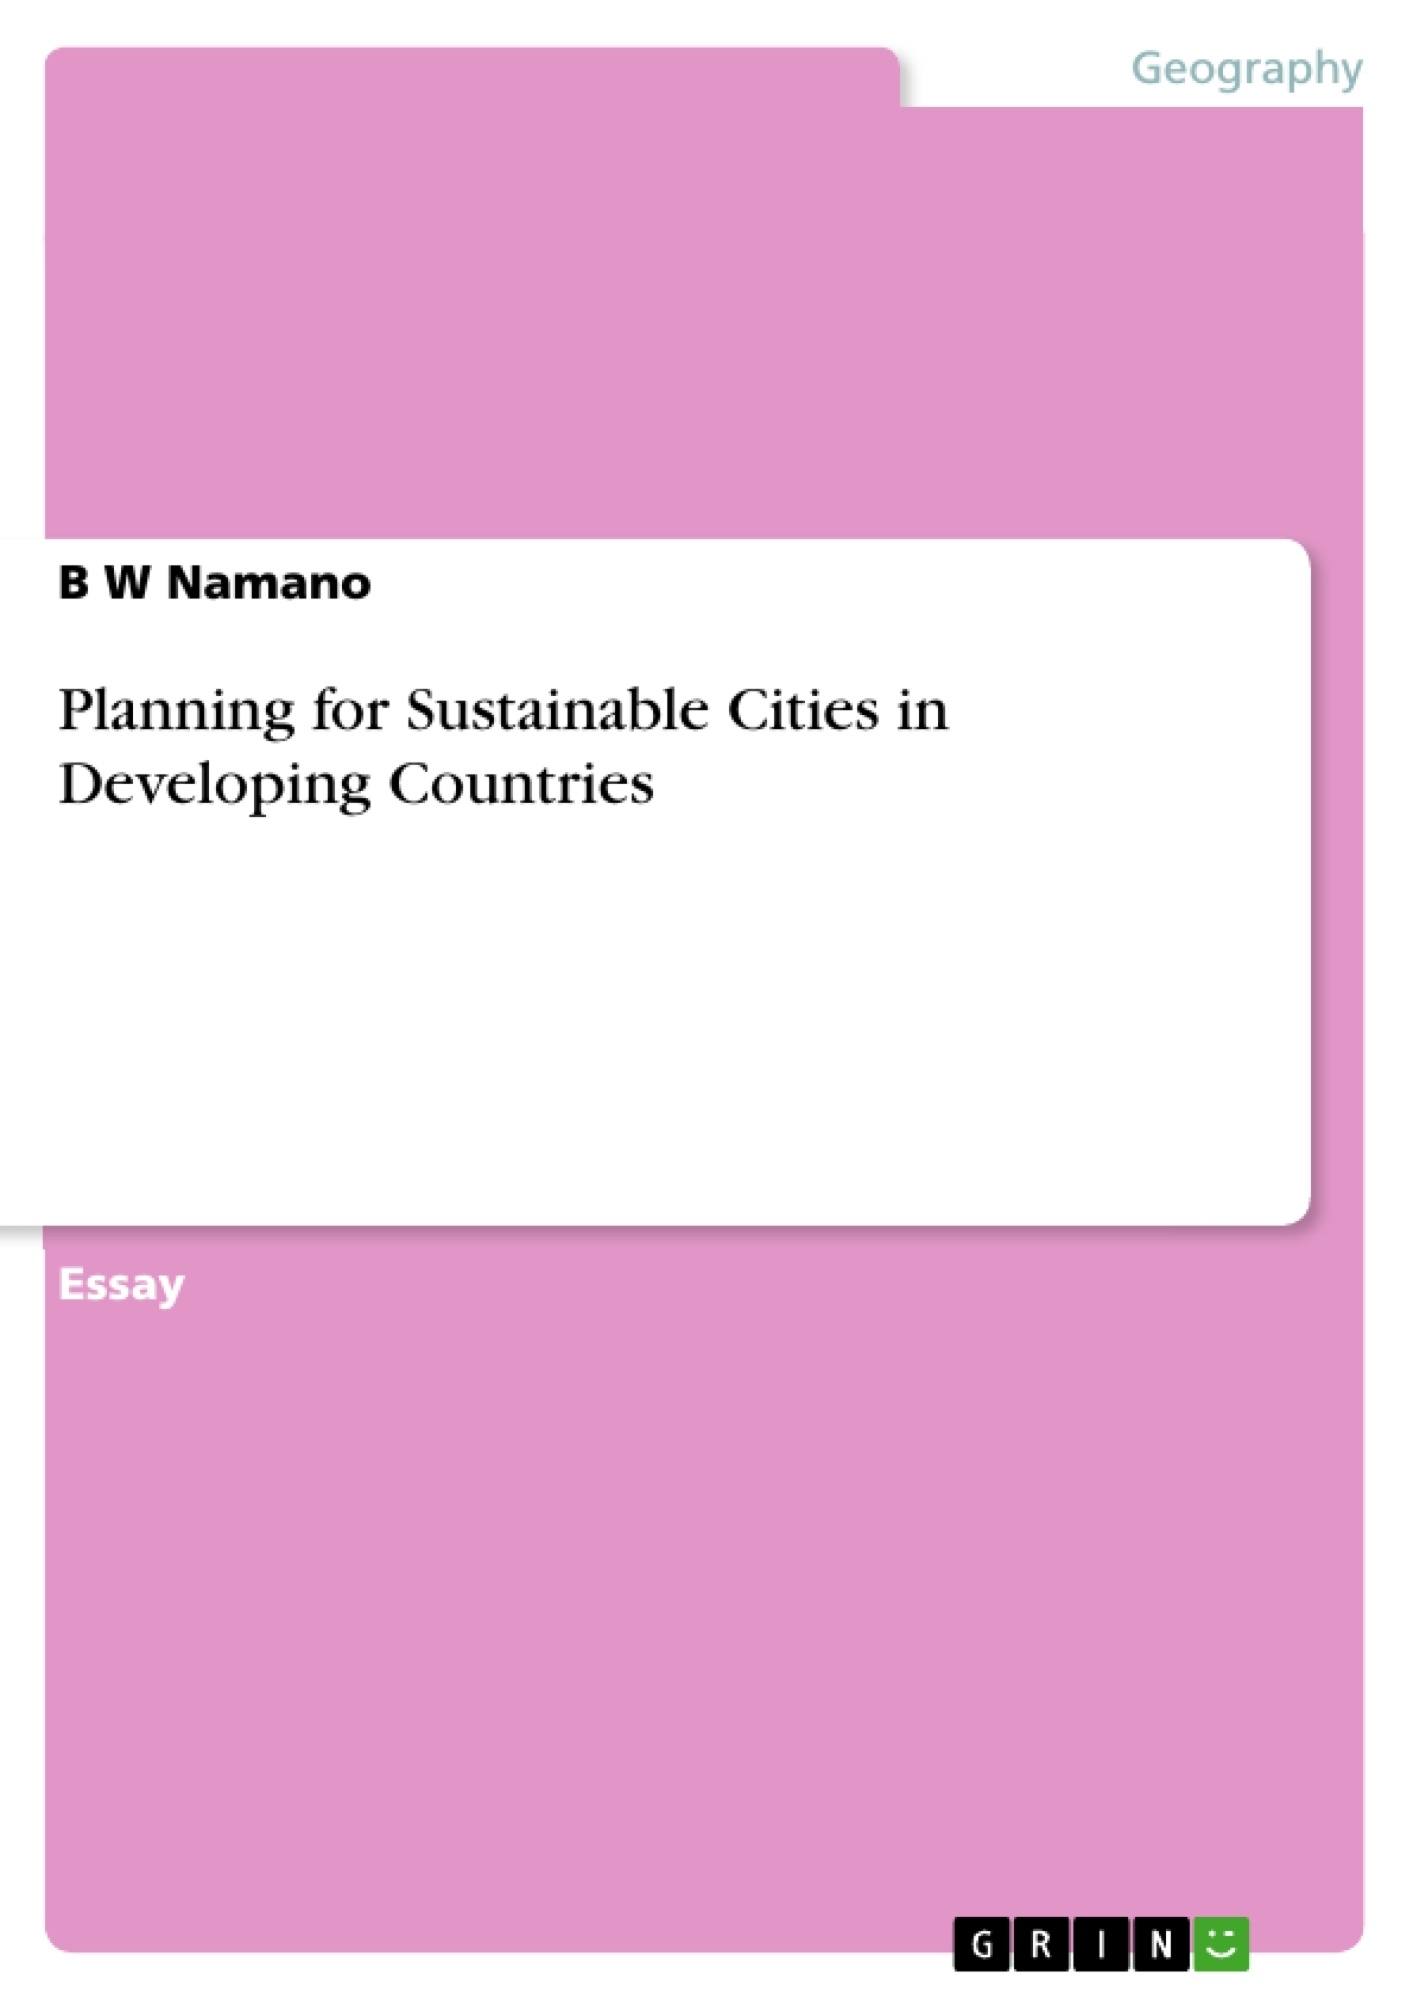 Effects of the trips agreement on developing countries economics essay